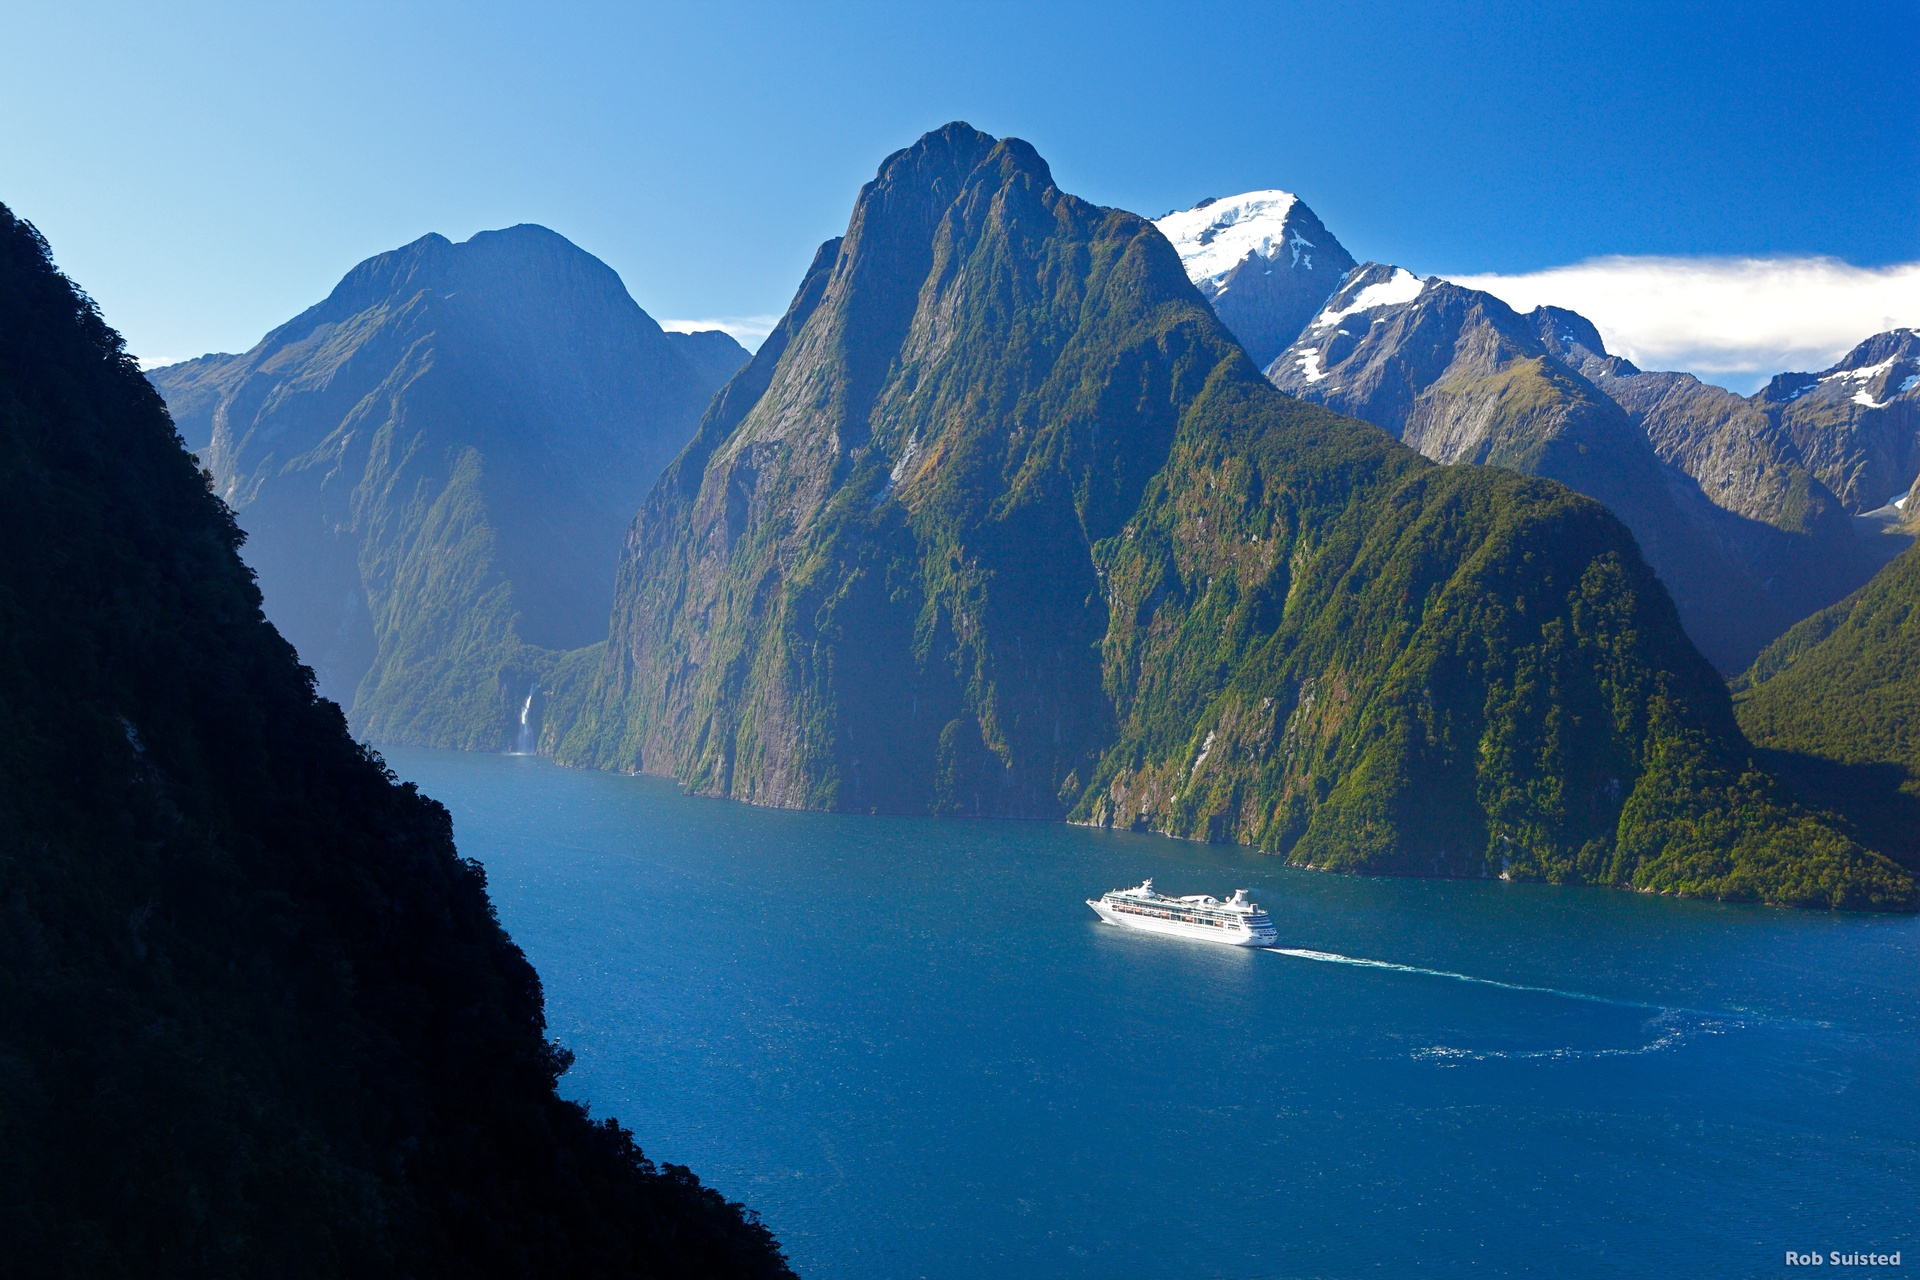 A scenic boat cruise in Milford Sound, surrounded by the towering peaks that enclose the Fiord is an absolute must!